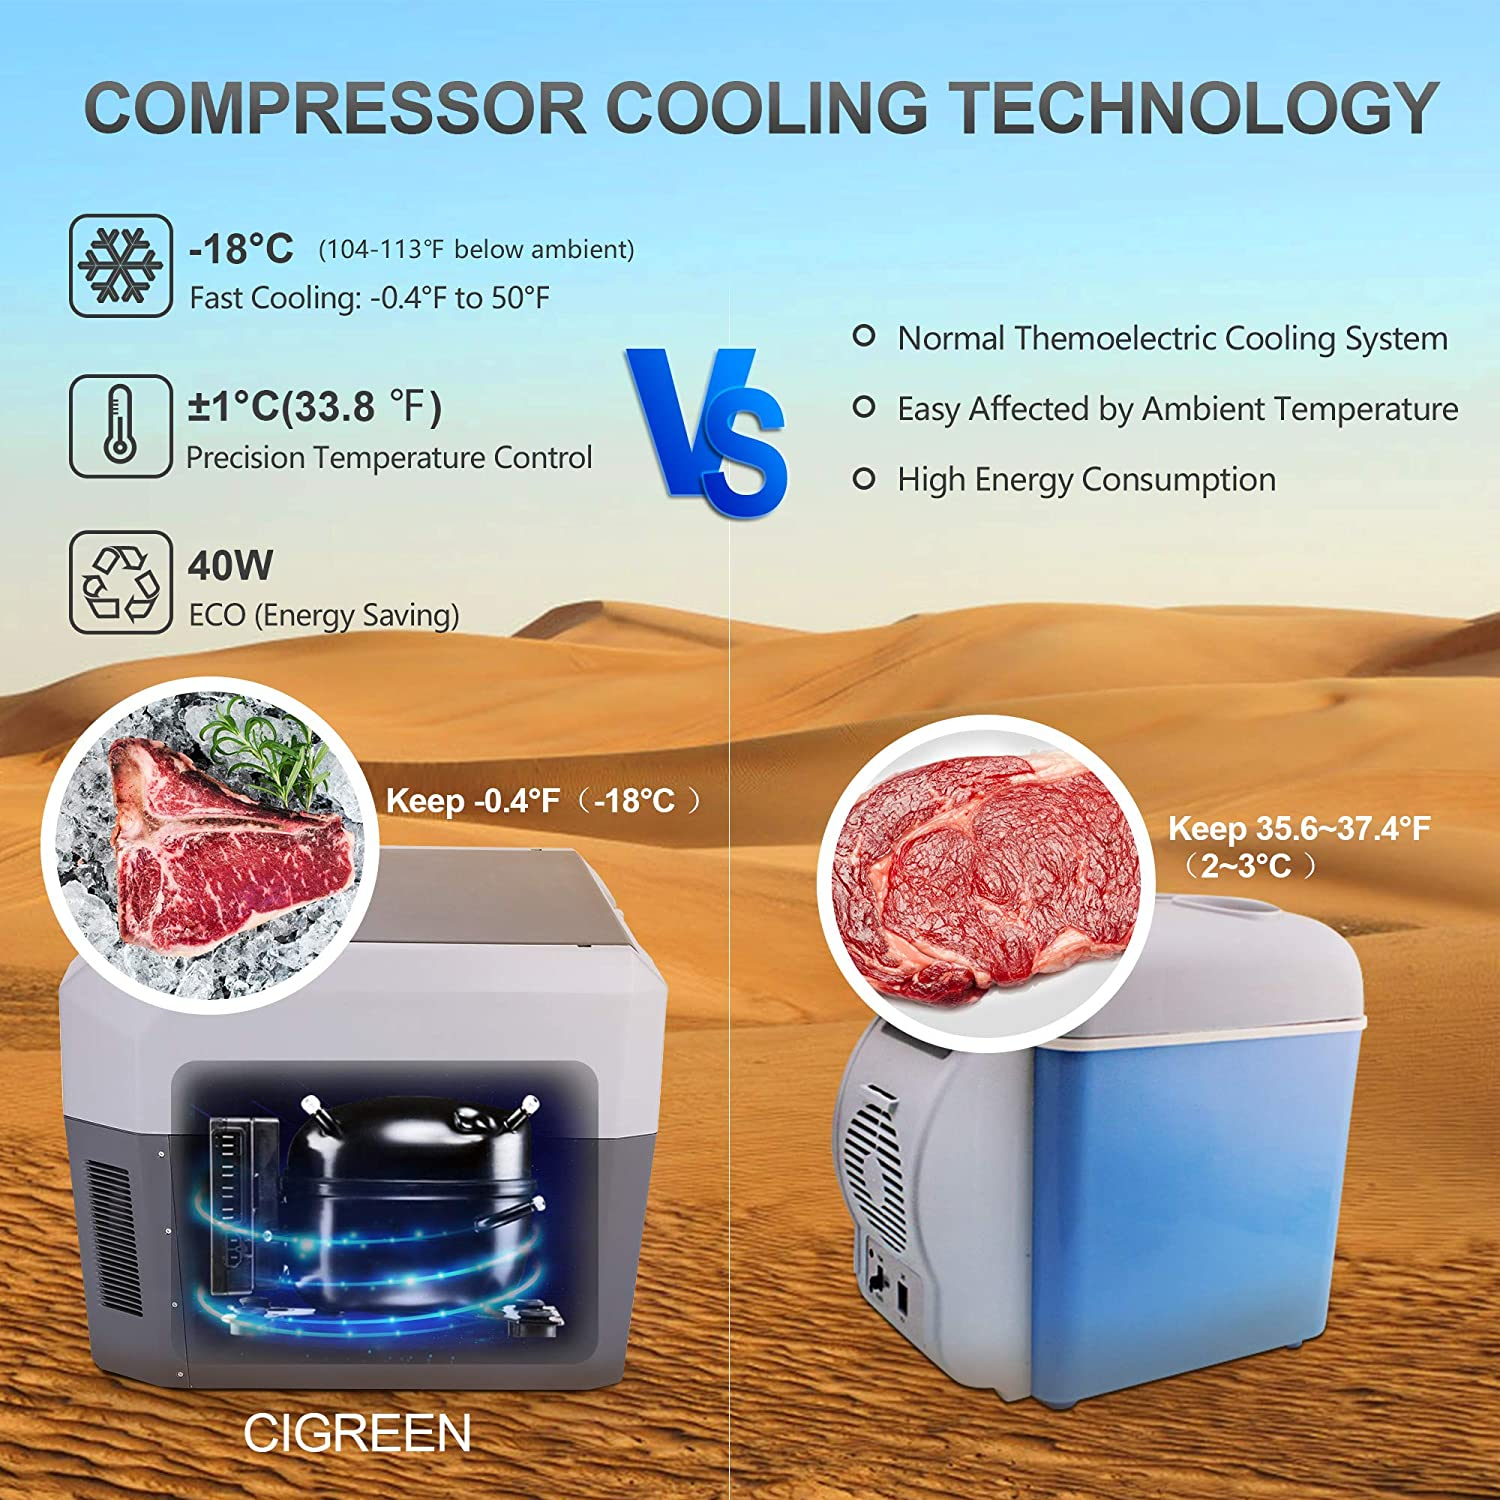 CIGREEN 34.9 Quart 33 Liter Portable Refrigerator, Compressor Electric Cooler, Mini Fridge Freezer for Driving, Camping, Travel, Fishing, Outdoor and Home Use -12 24V DC and 110-240 AC, DC-35T